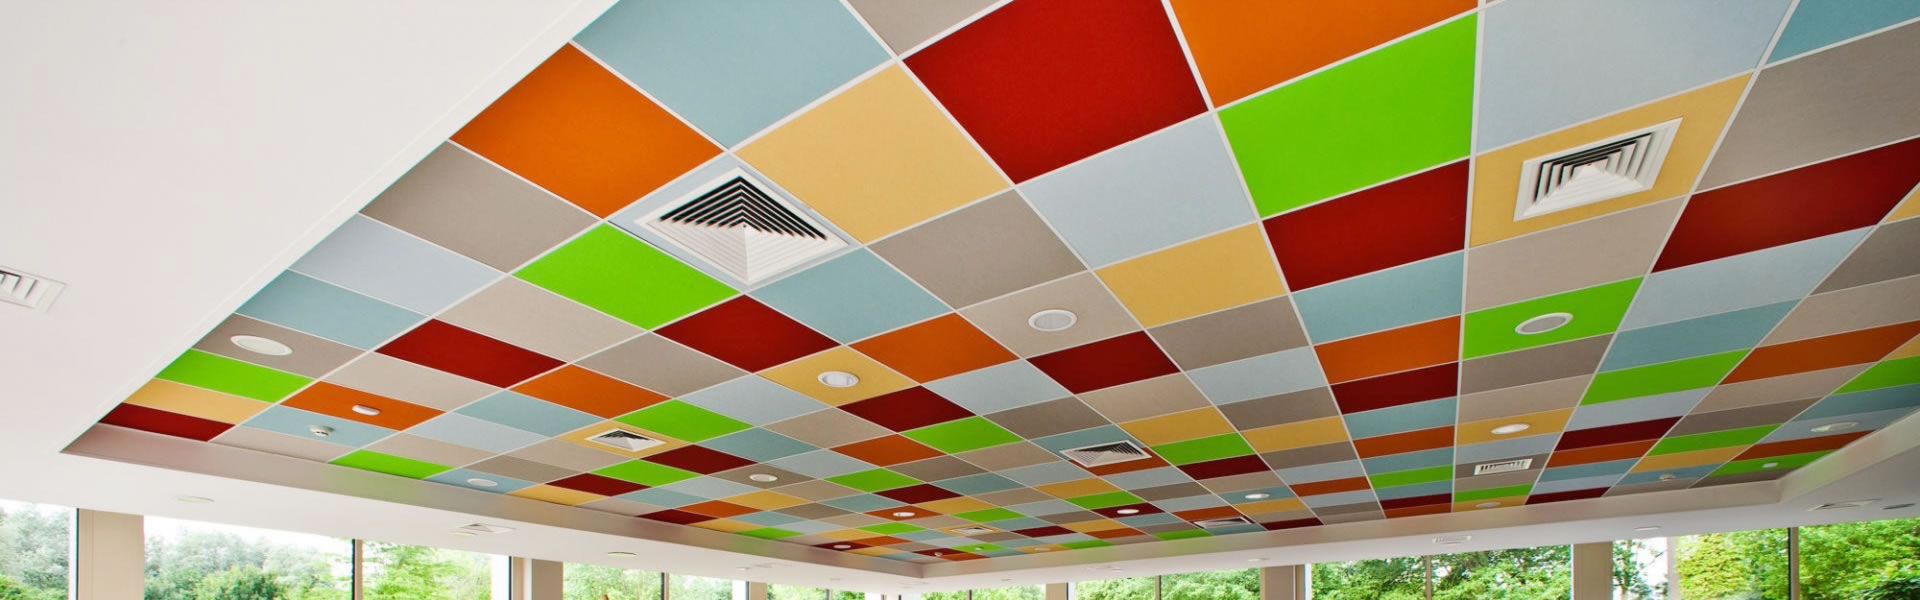 Rockfon Colour All Ceiling tile